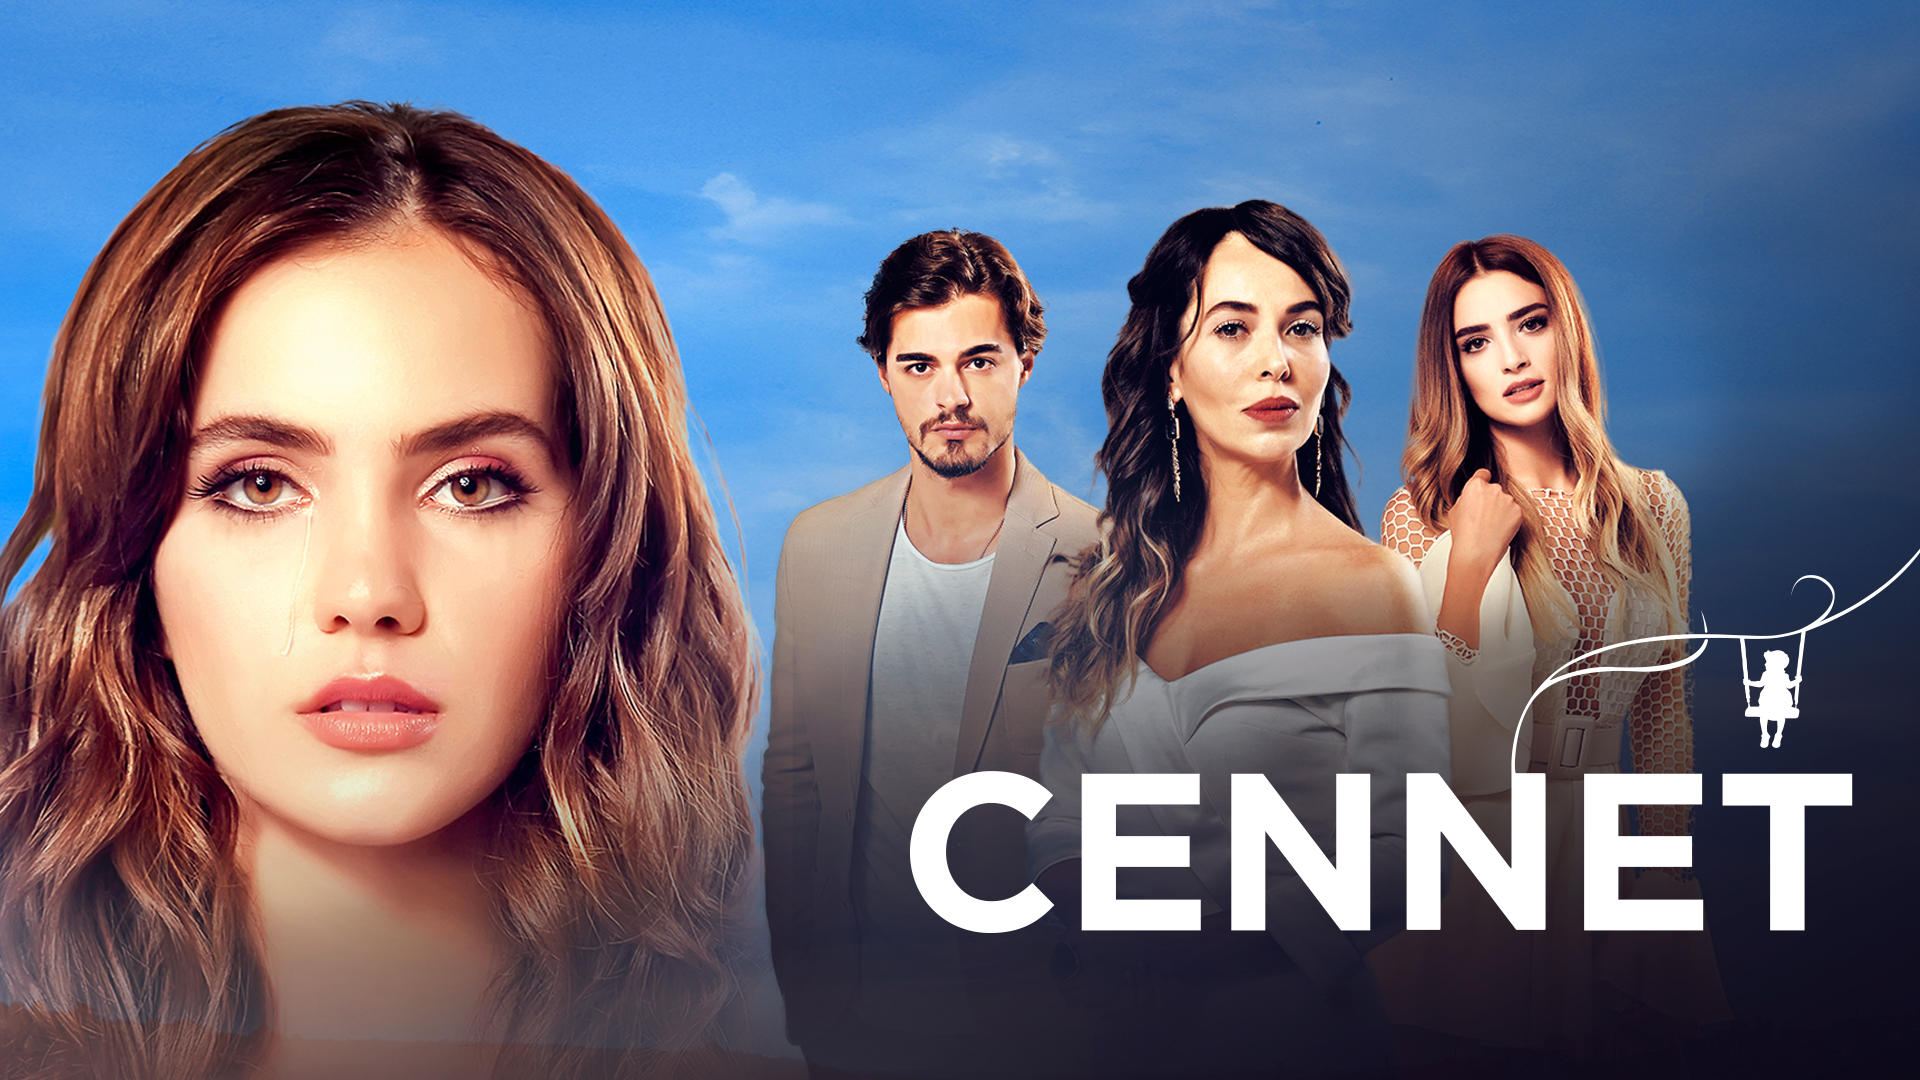 Cennet Capitulos Completos Trailer Videos Telemundo